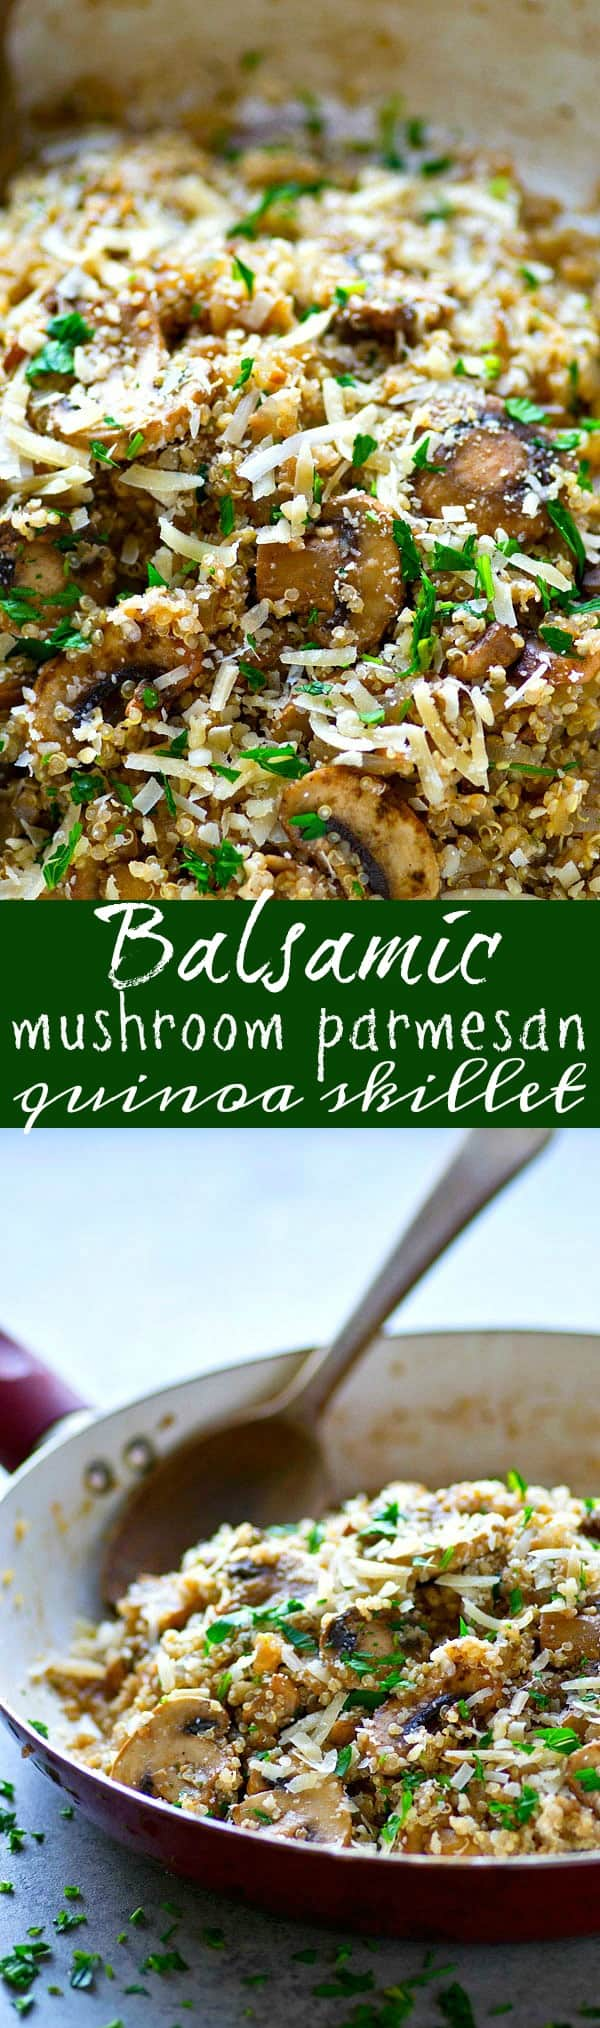 Flavorful balsamic and tons of Parmesan cheese take this easy balsamic mushroom Parmesan quinoa skillet over the top! Made entirely in one skillet in only 30 minutes.